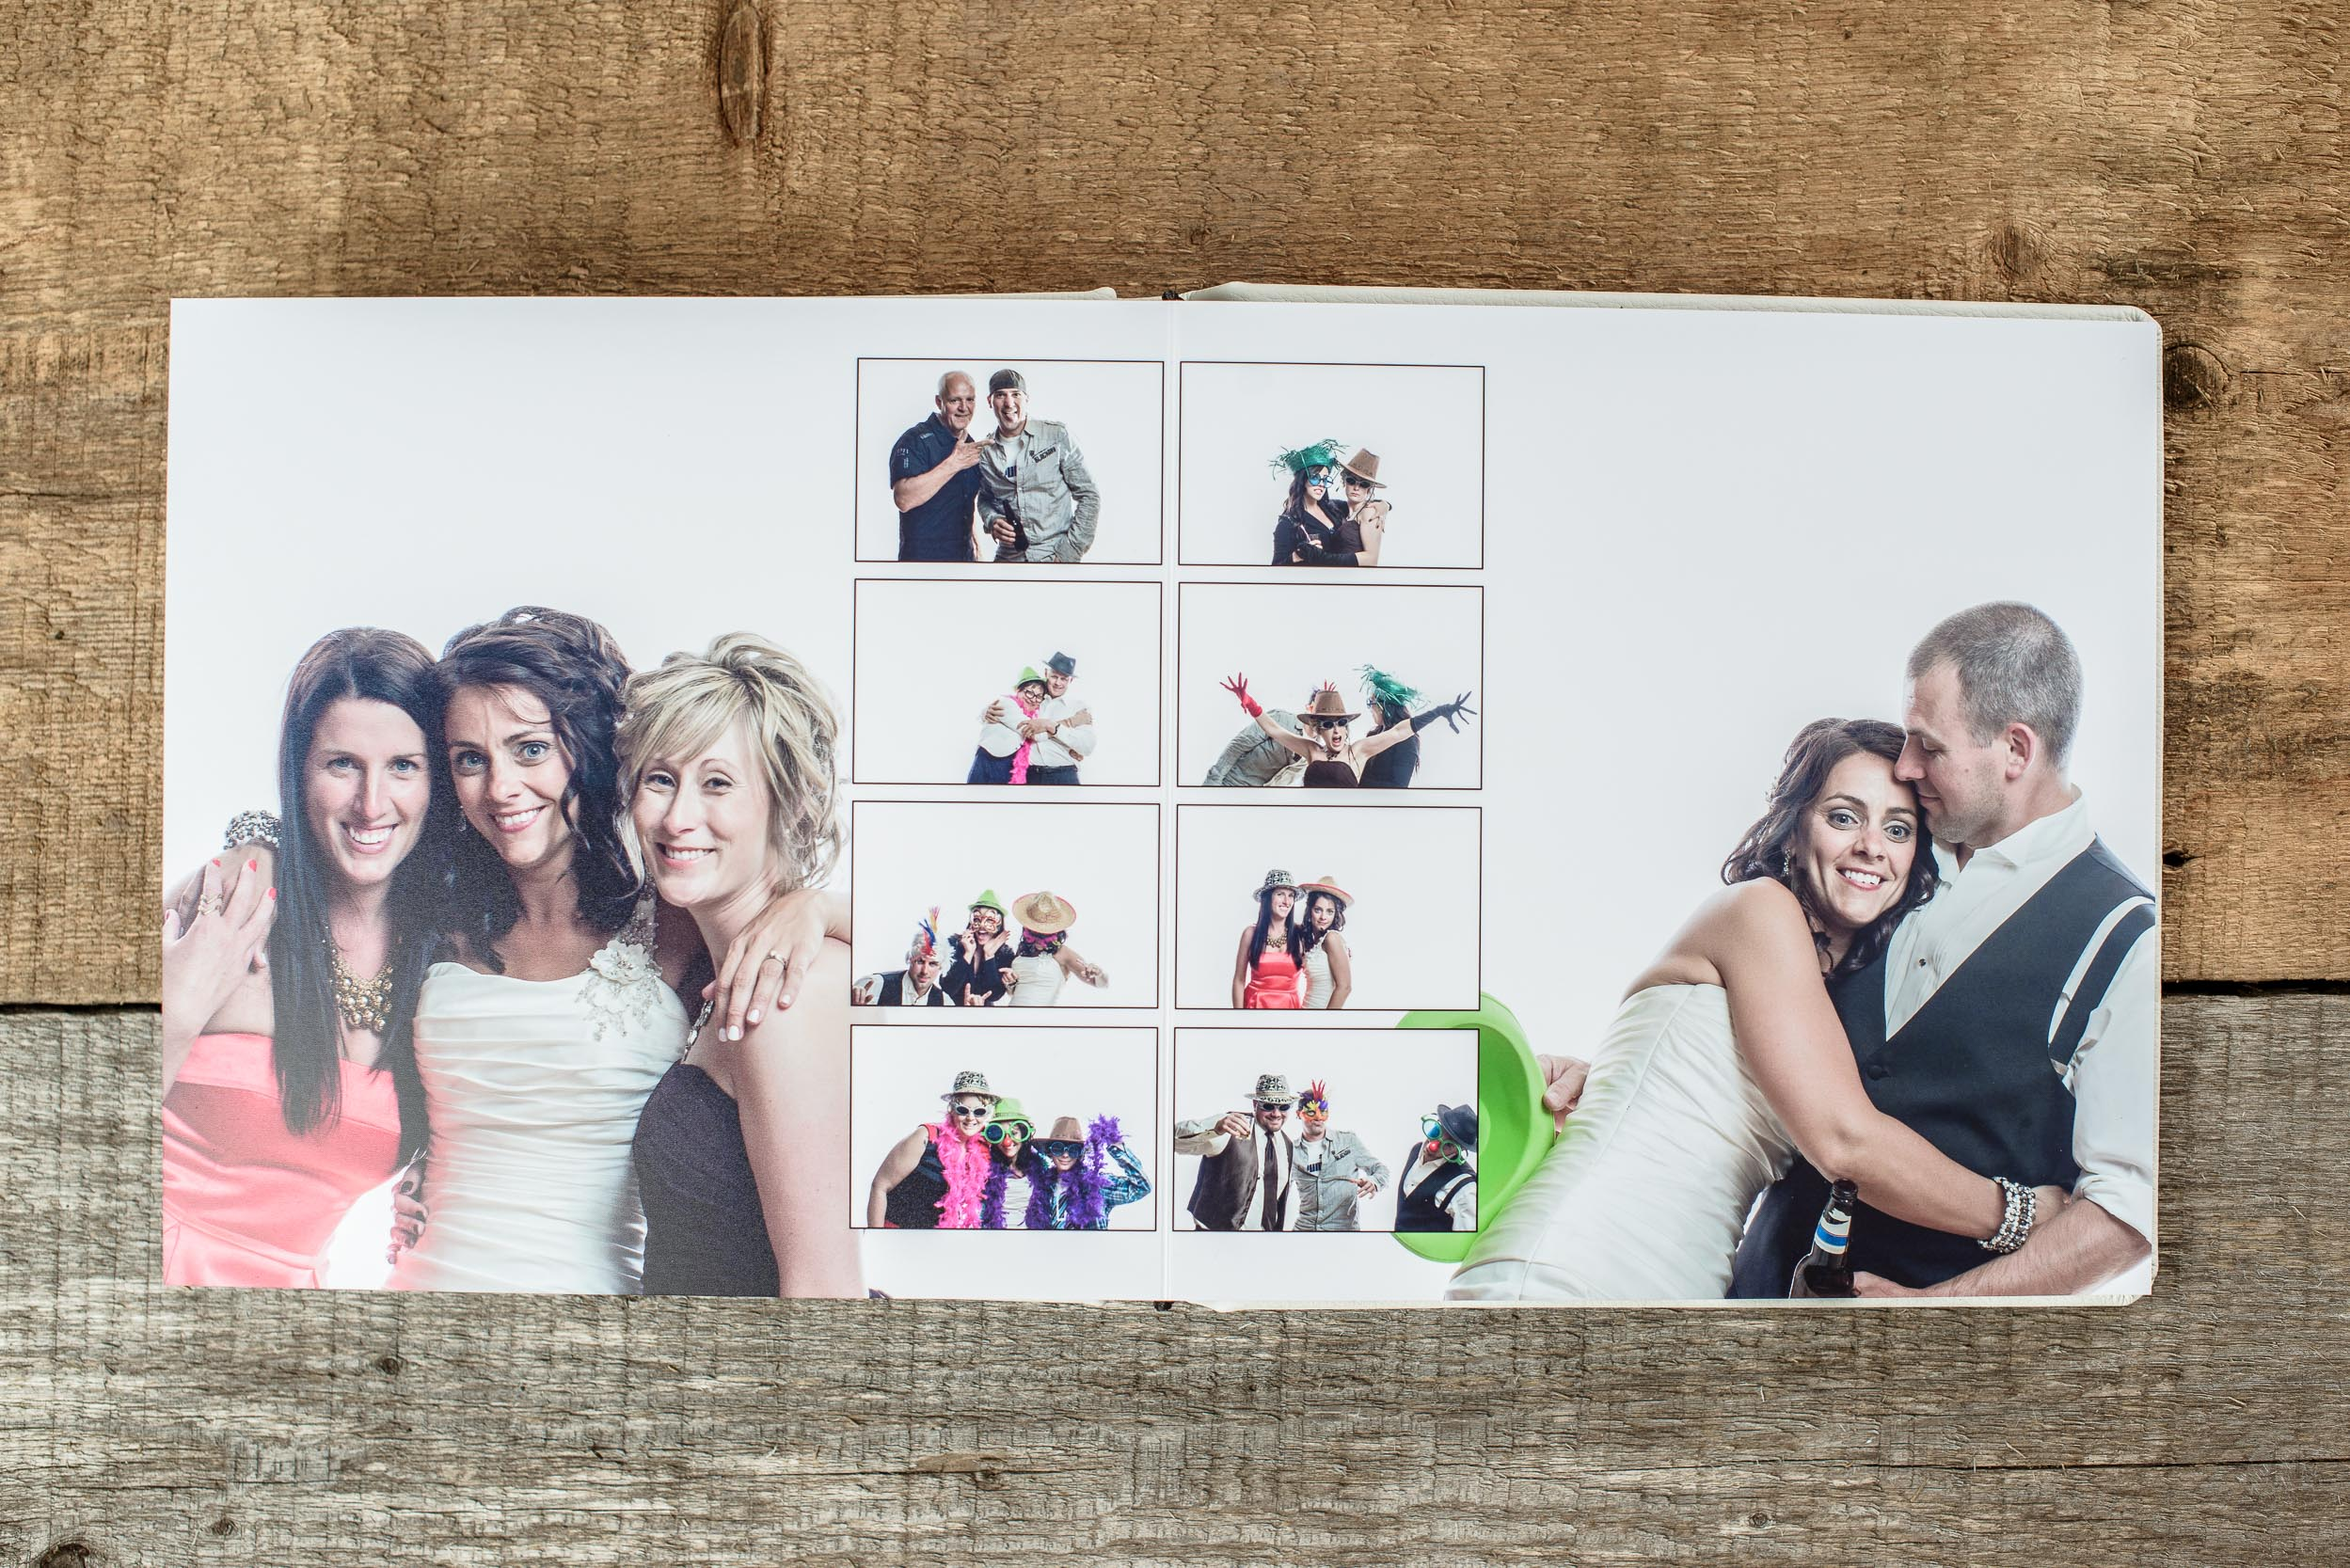 Nigel Fearon Photography | Photo Booth Album-7.jpg